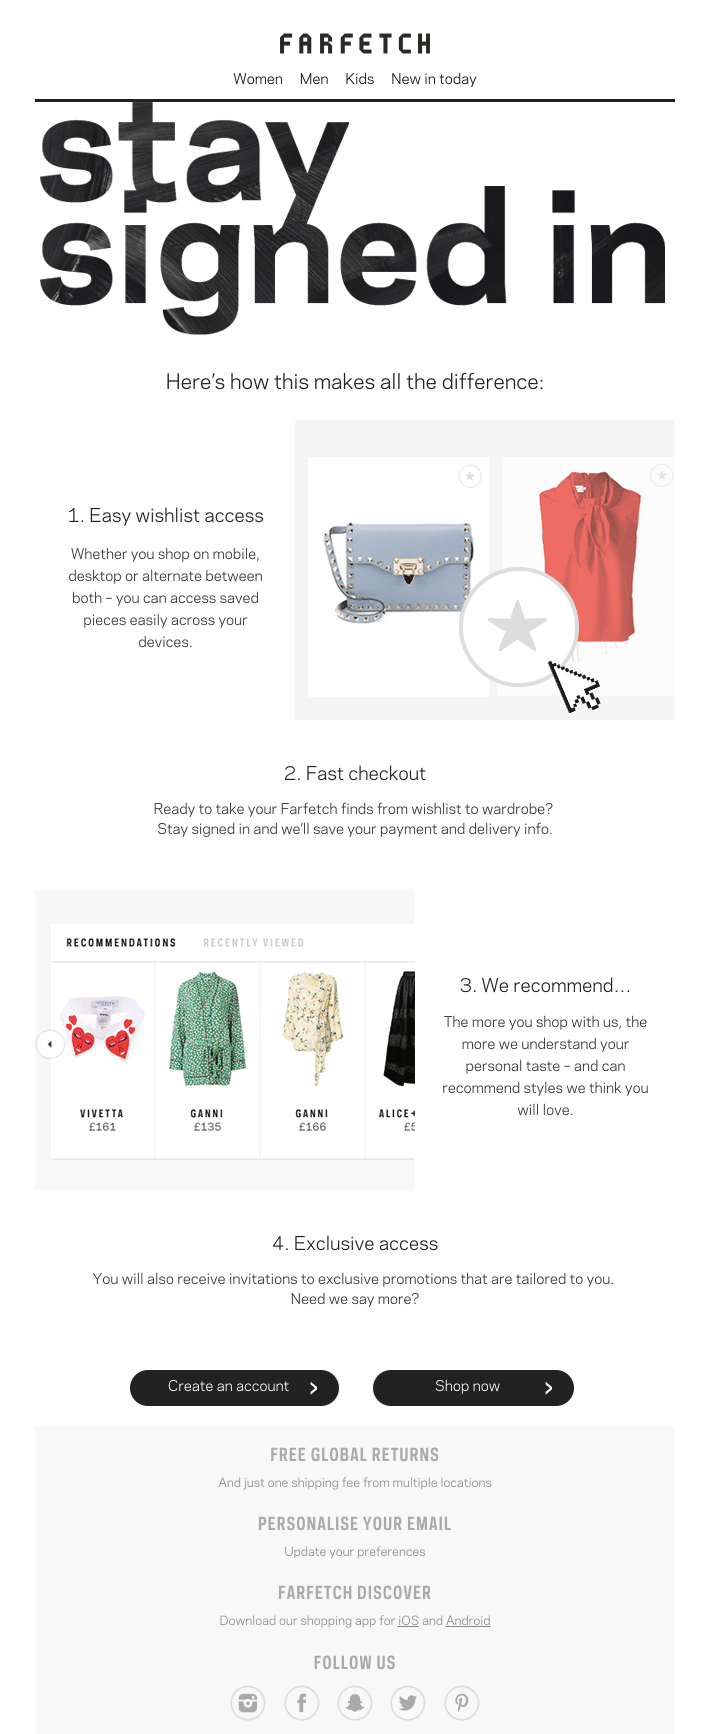 10 Ecommerce Newsletter Examples for Your Next Email